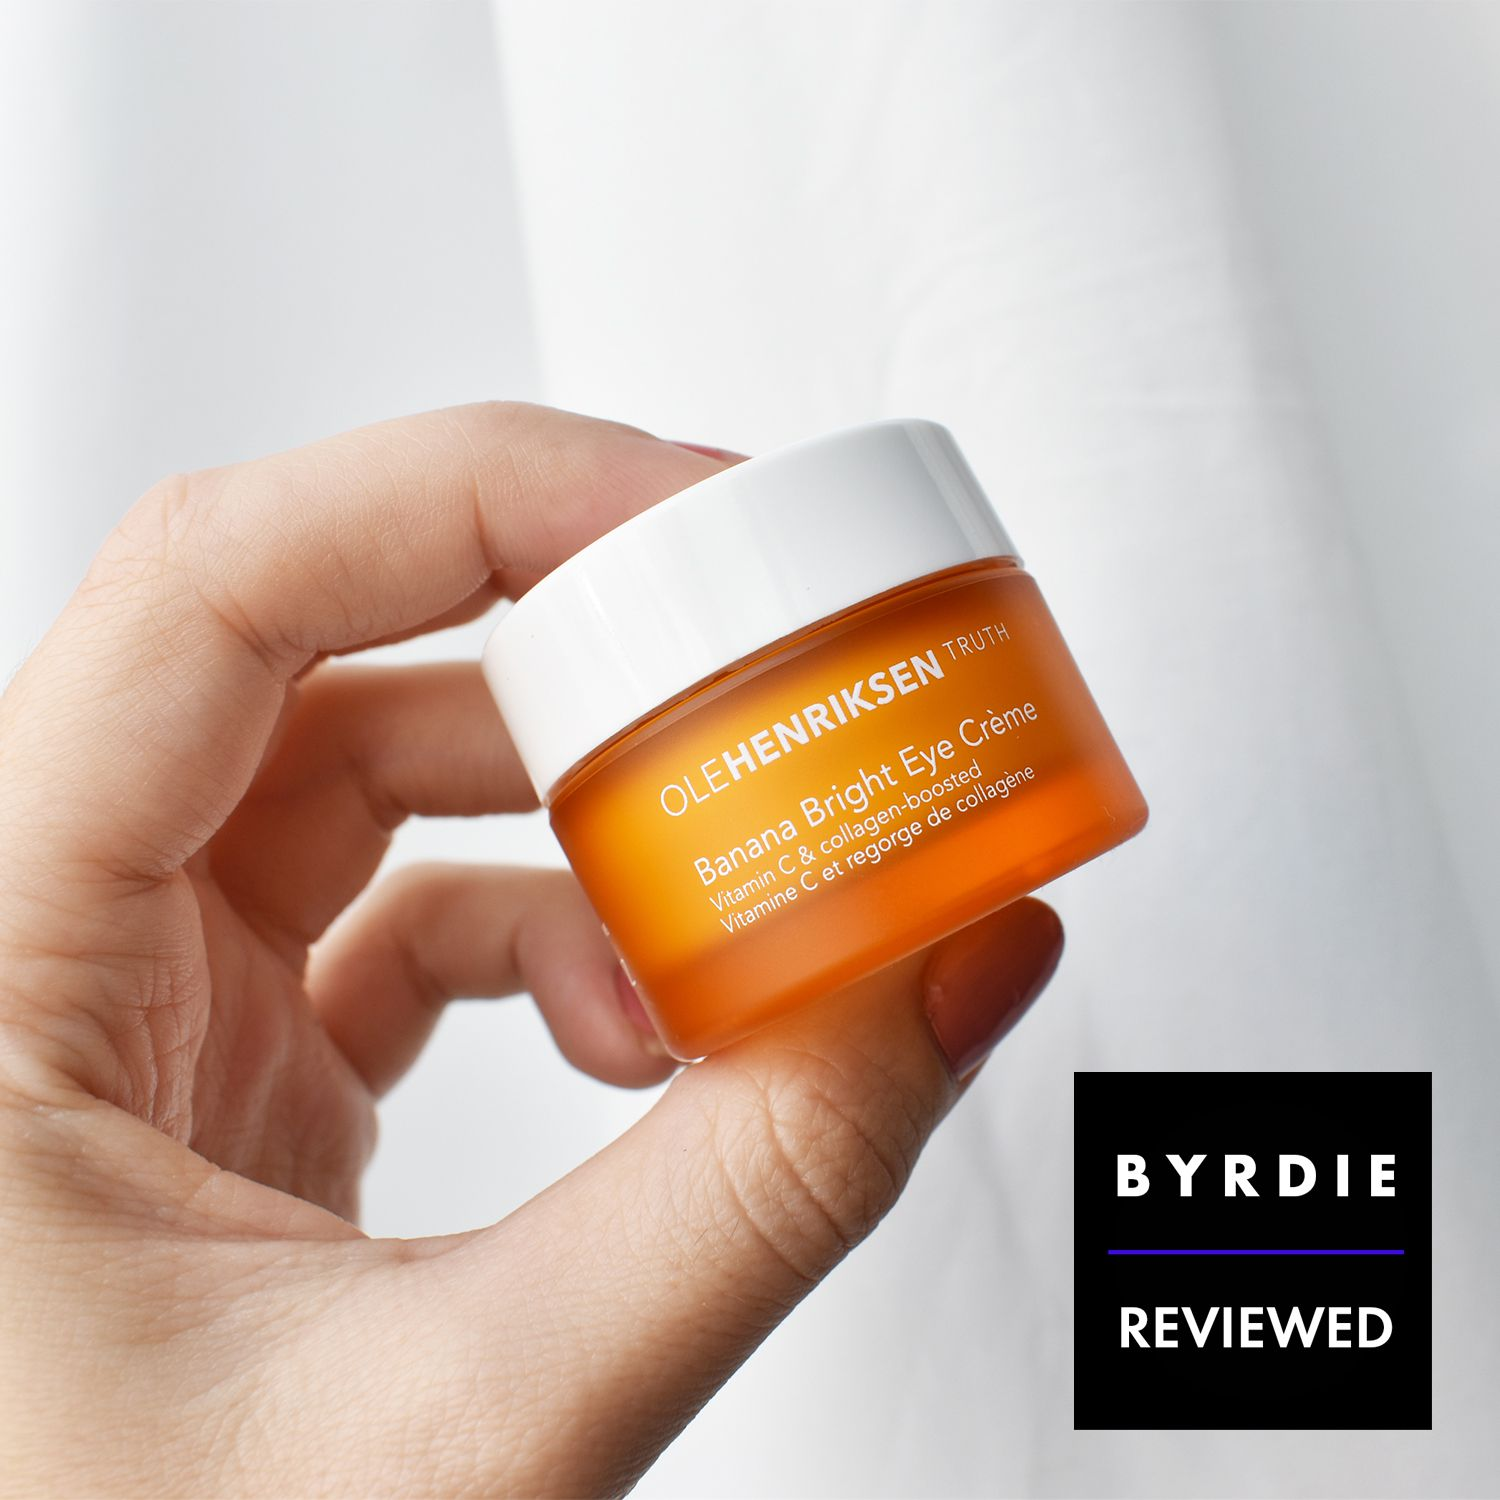 Ole Henriksen S Banana Bright Eye Creme Review